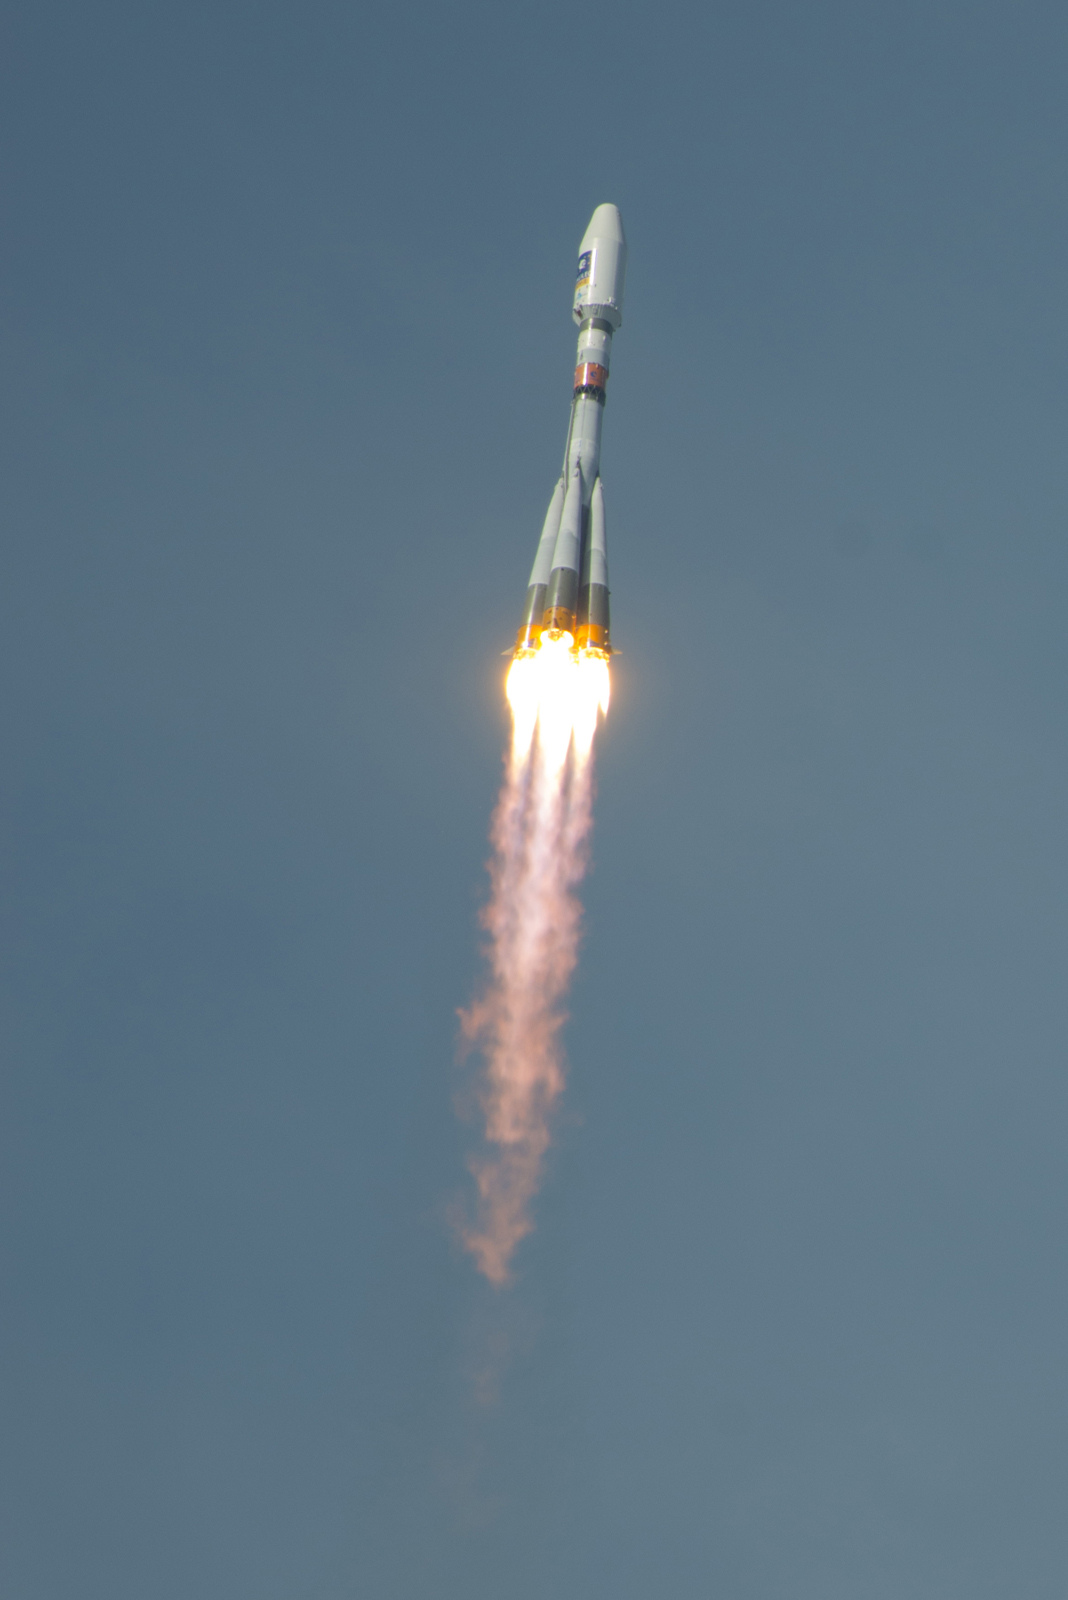 russian space rockets launch - photo #21